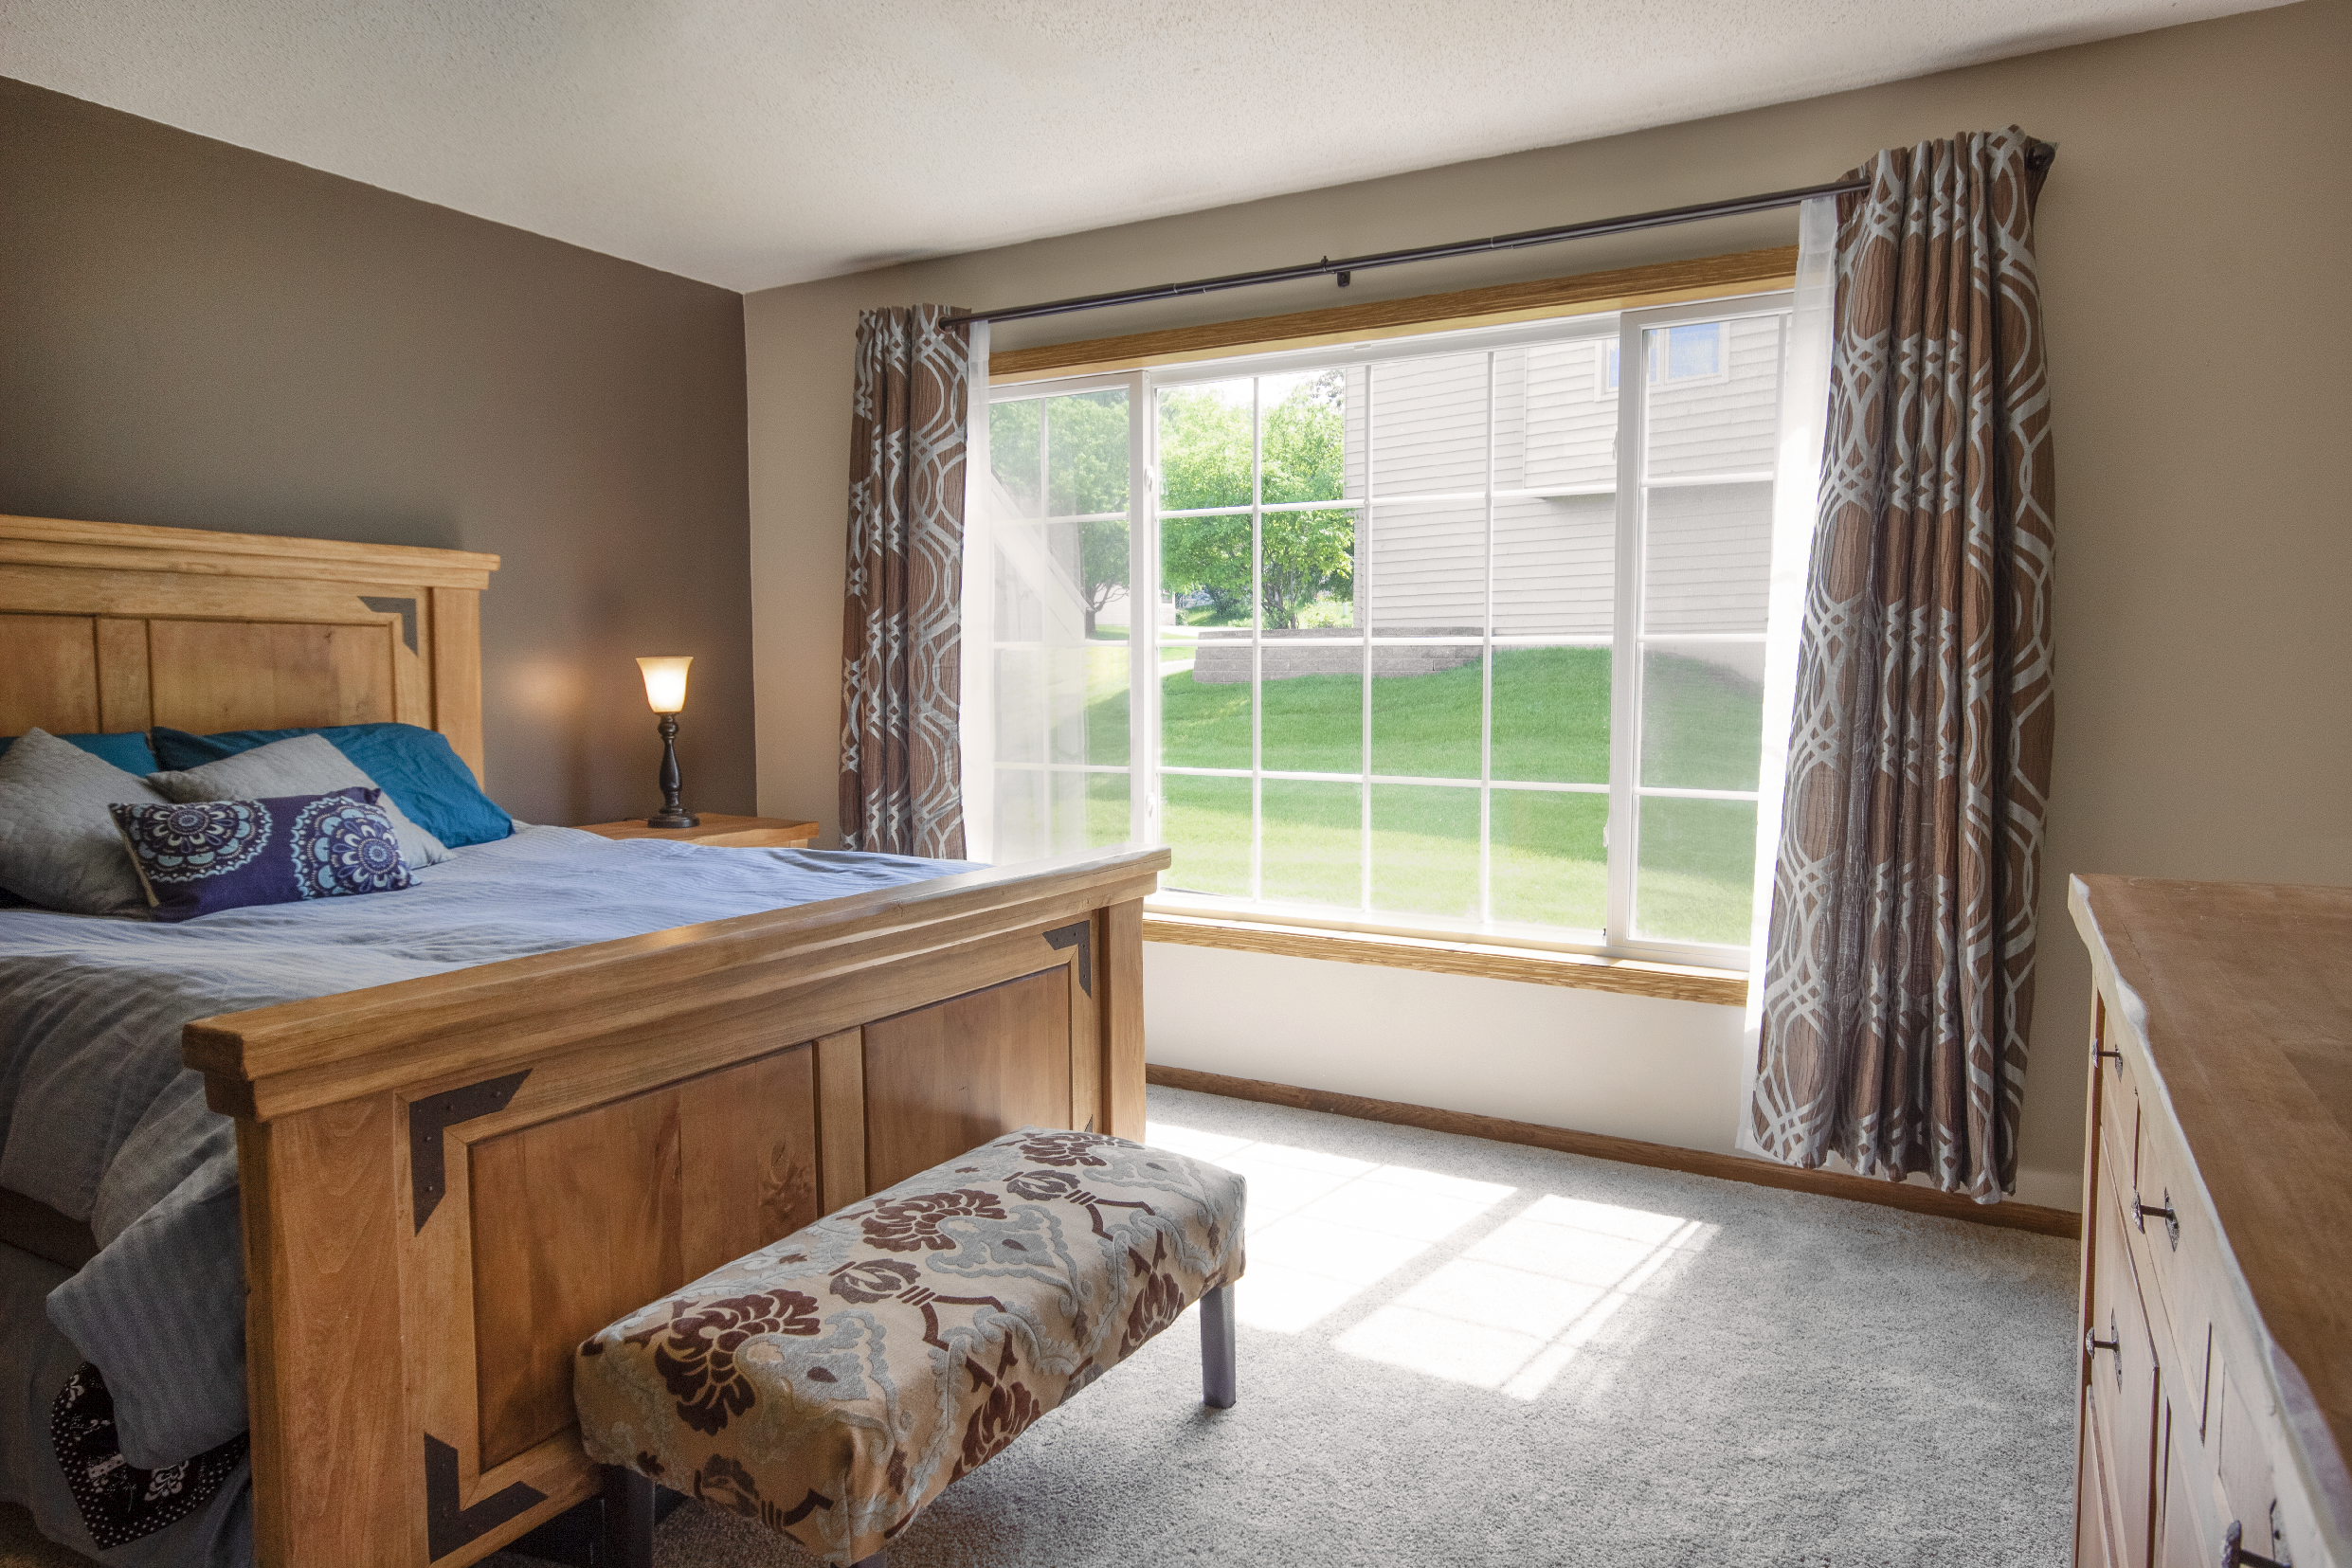 Bedroom with bed and Infinity from Marvin slider window